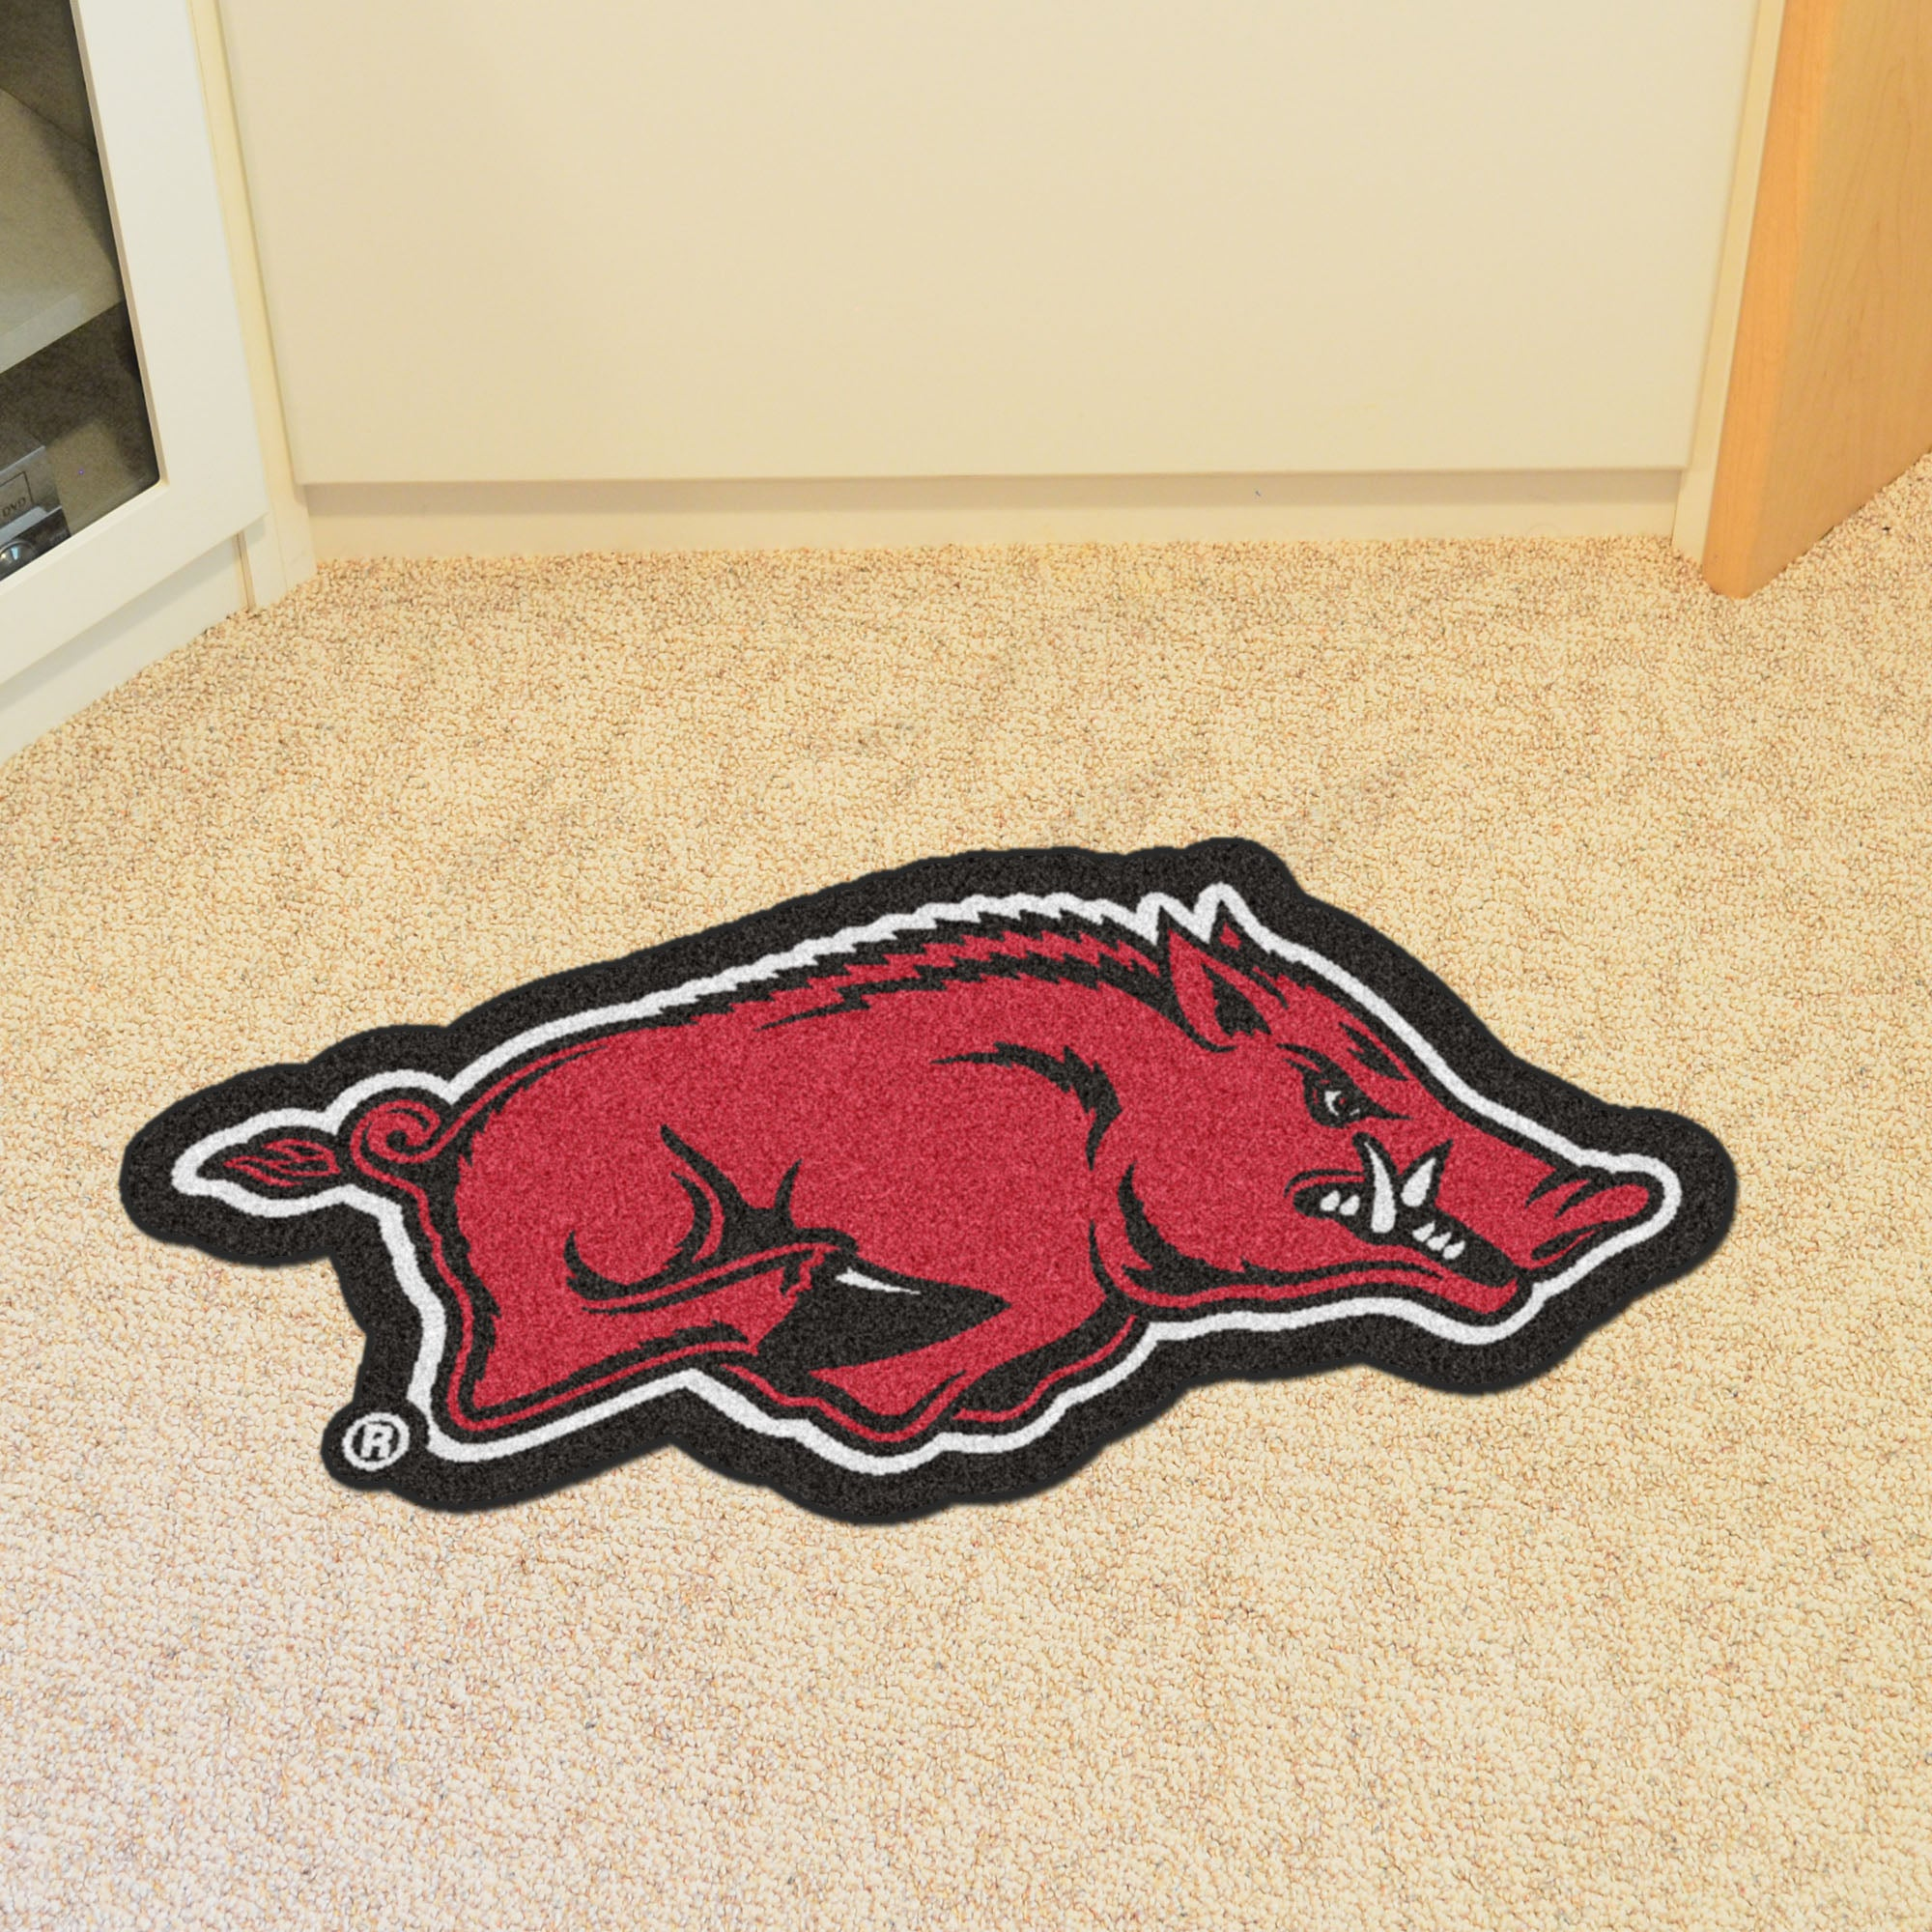 University of Arkansas Mascot Mat